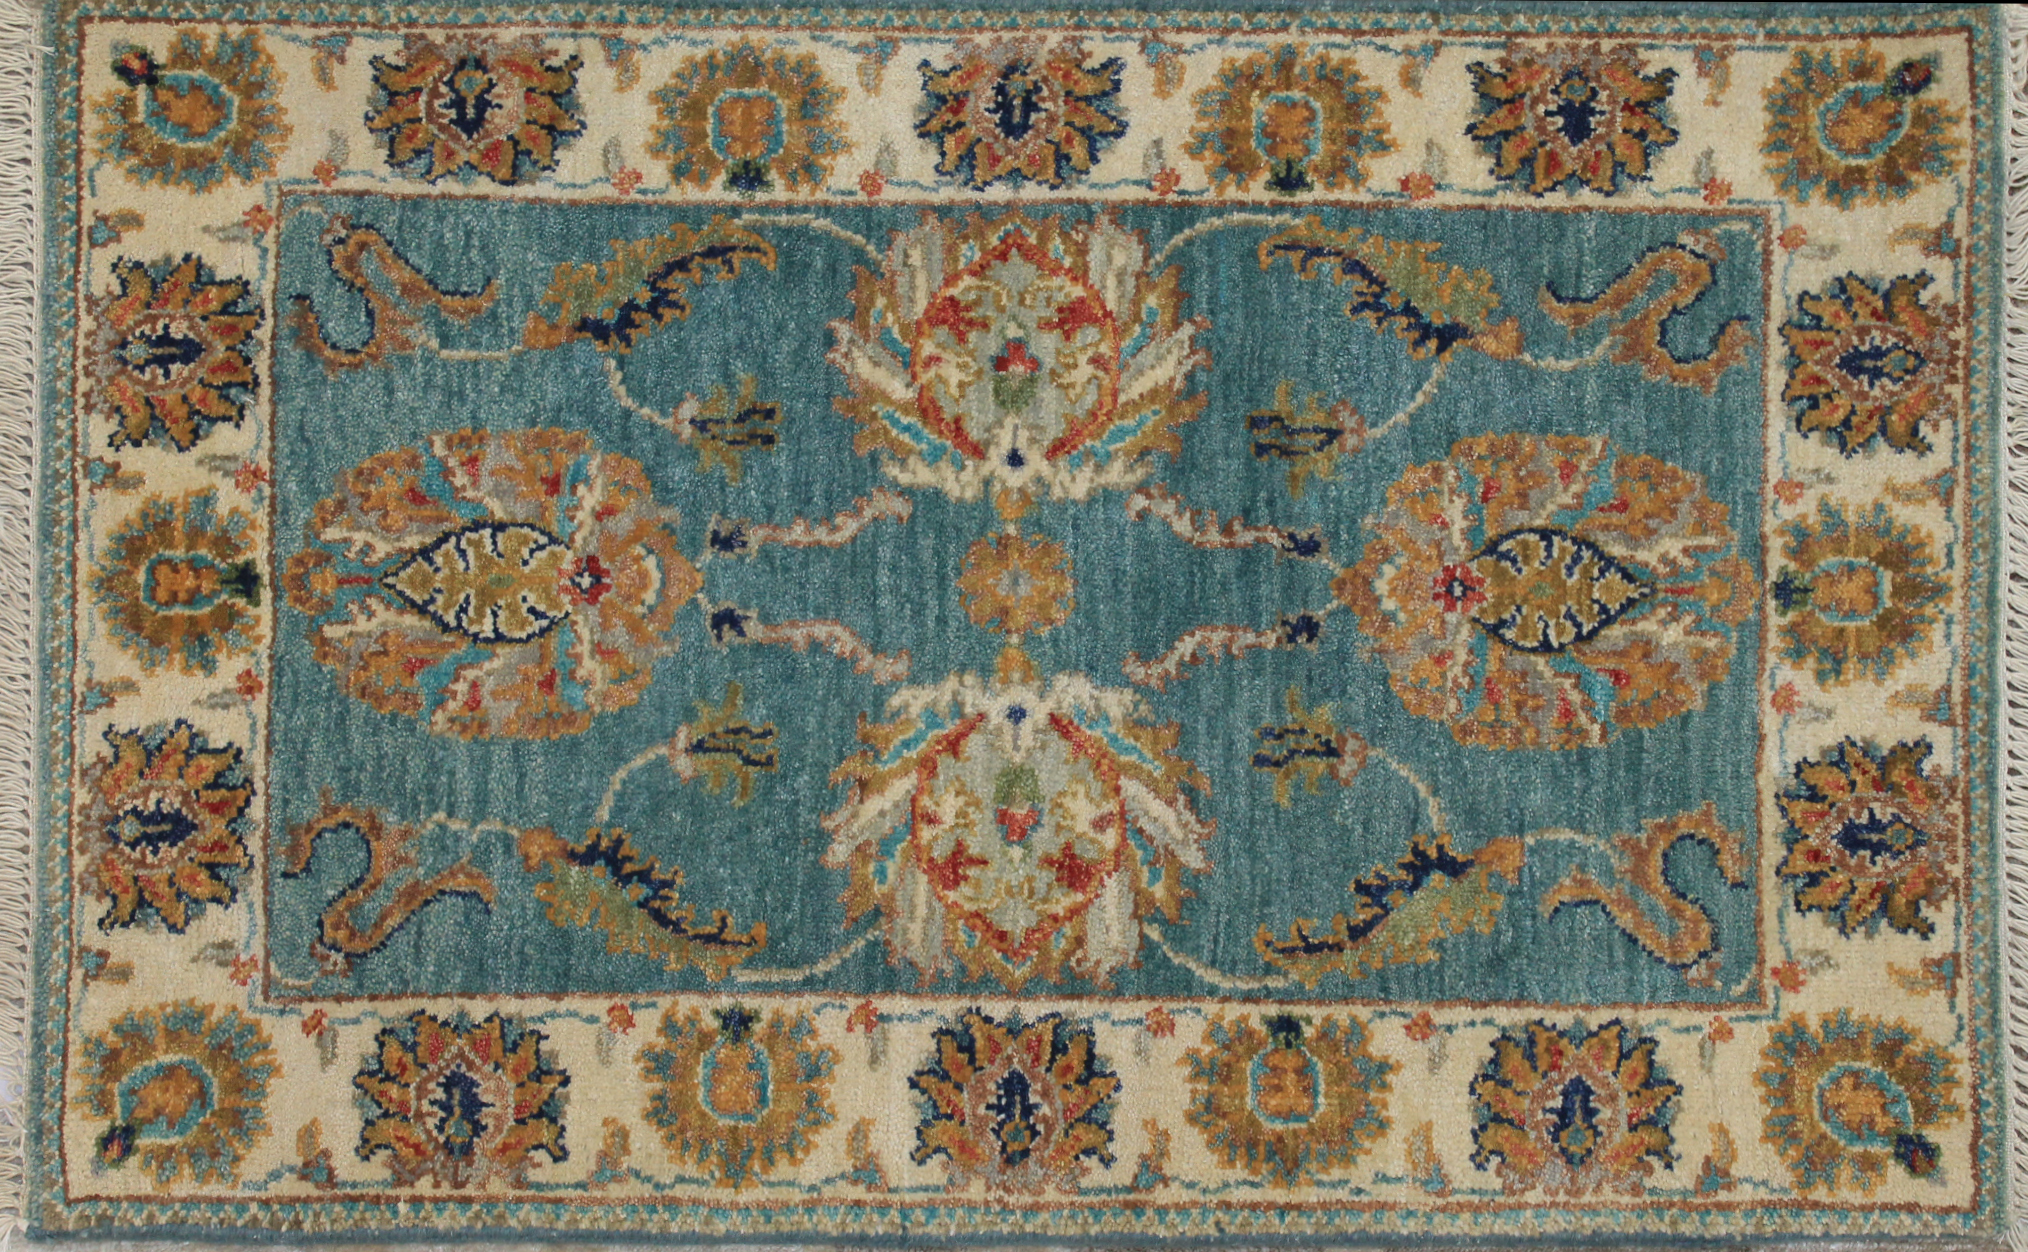 2X3 Traditional Hand Knotted Wool Area Rug - MR024197